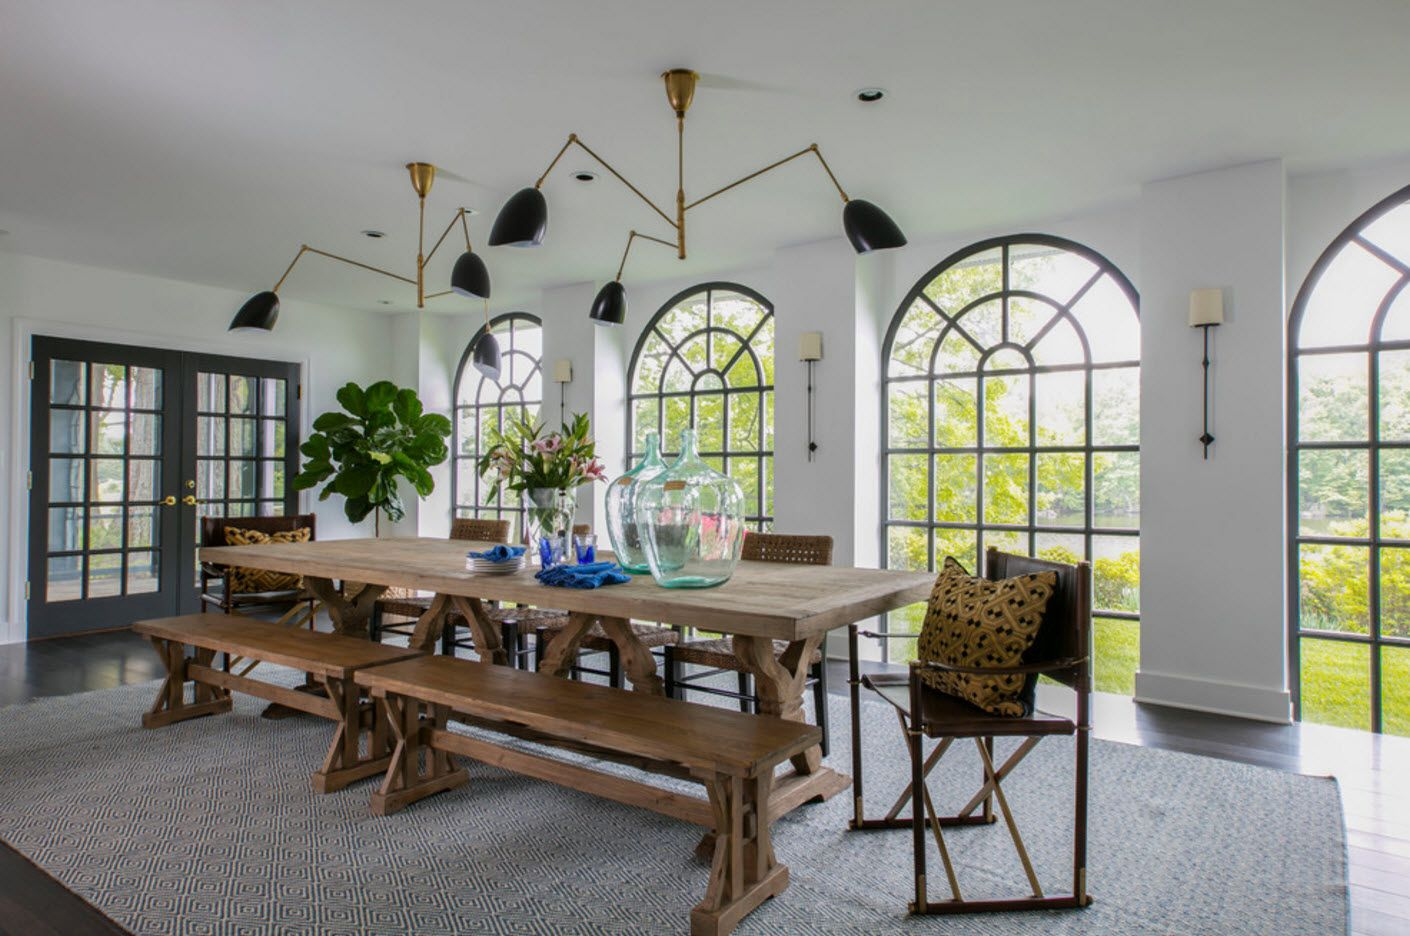 Mediterranean styled parge dining room at the countryside cottage